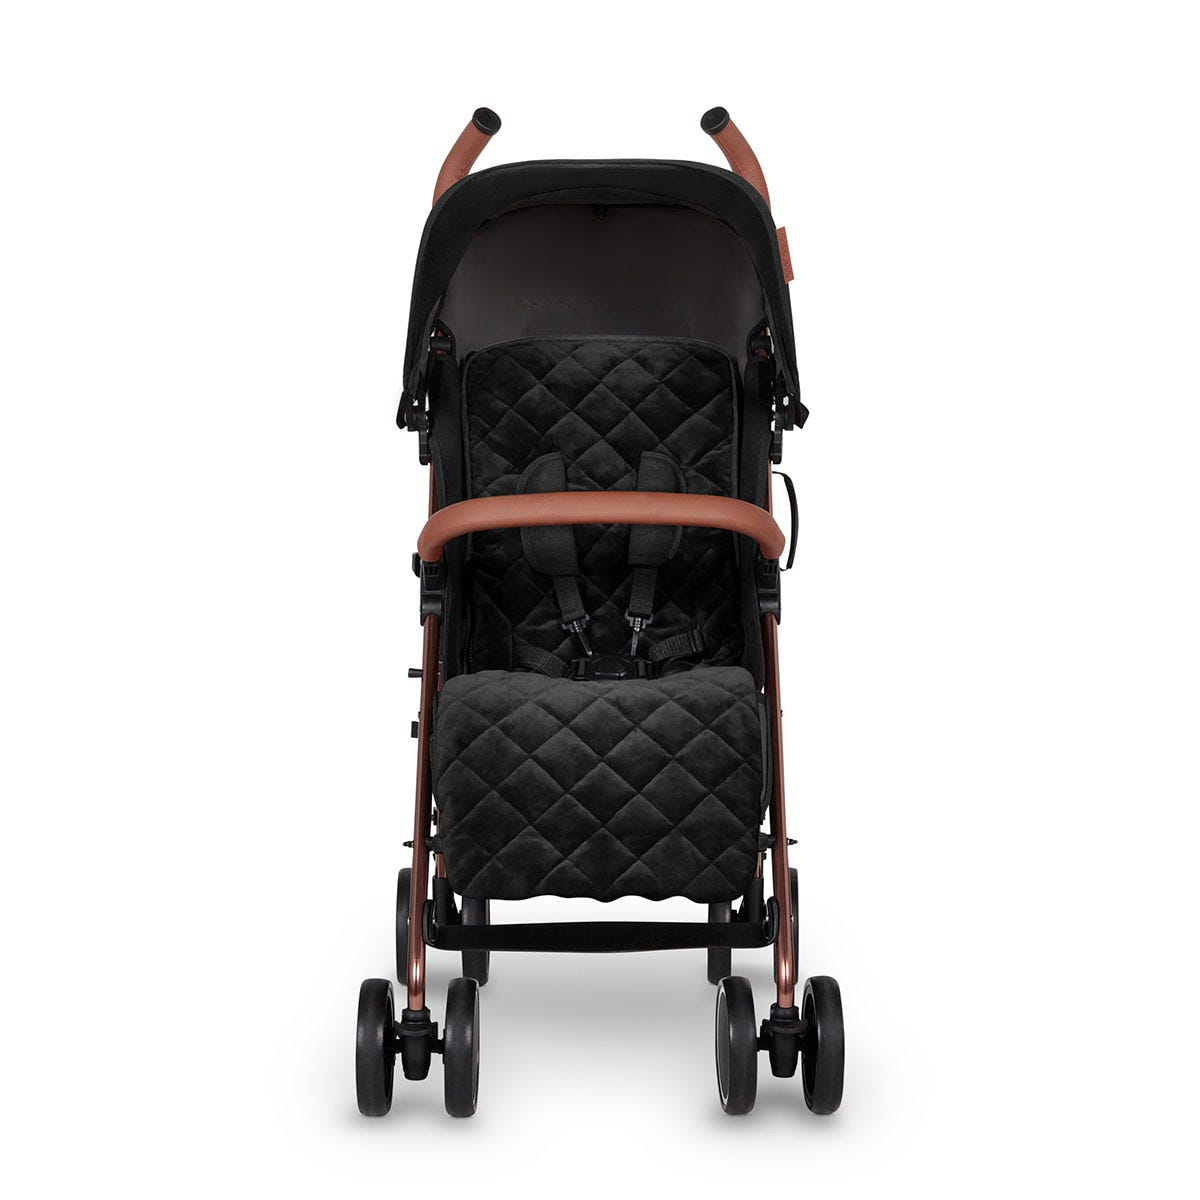 Ickle Bubba Discovery Prime Stroller - Black on Rose Gold